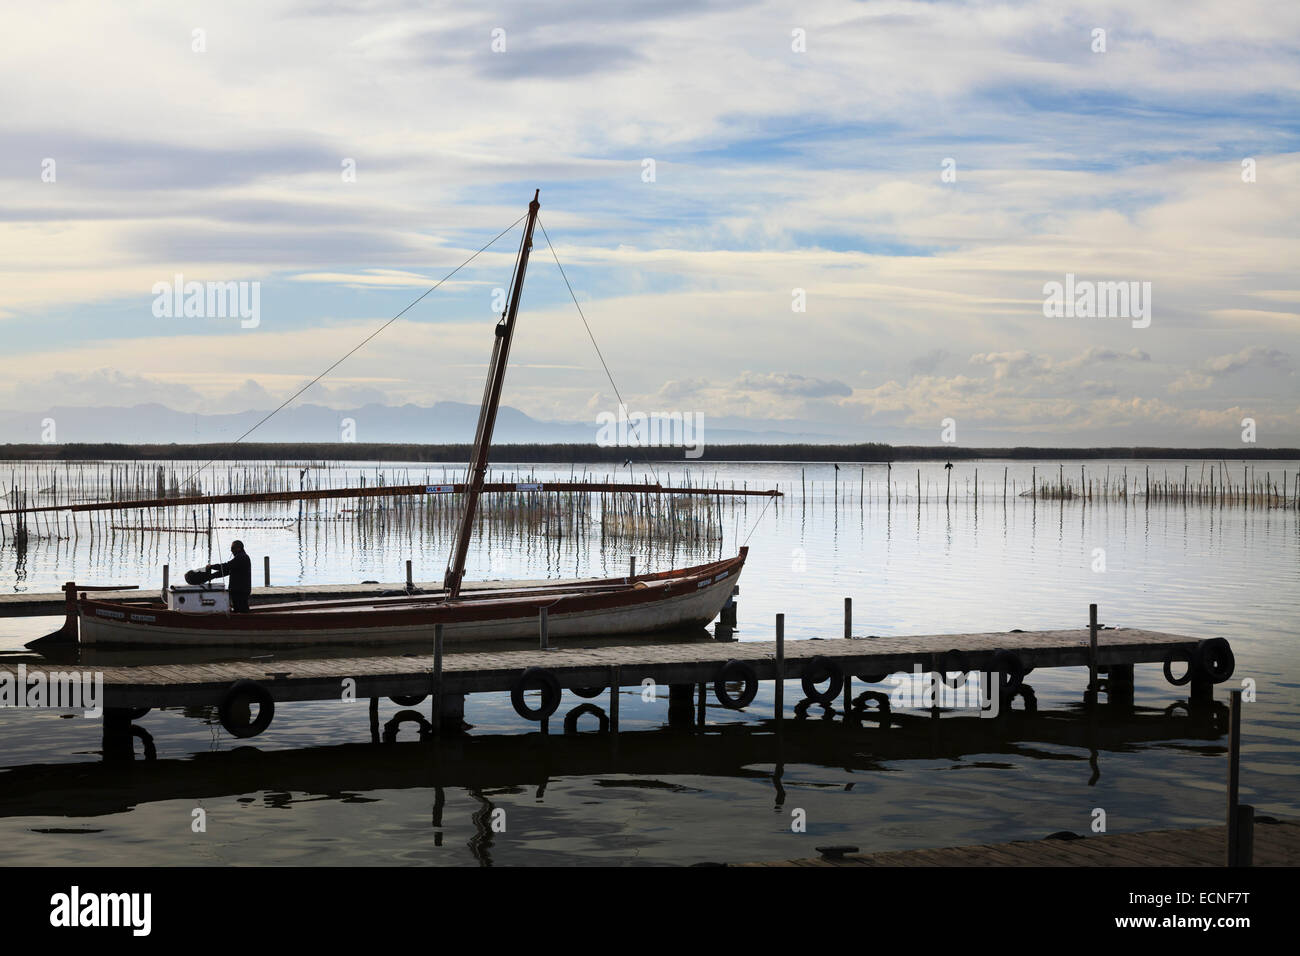 Sailing boat being prepared on the jetty on Lake Albufera Spain - Stock Image